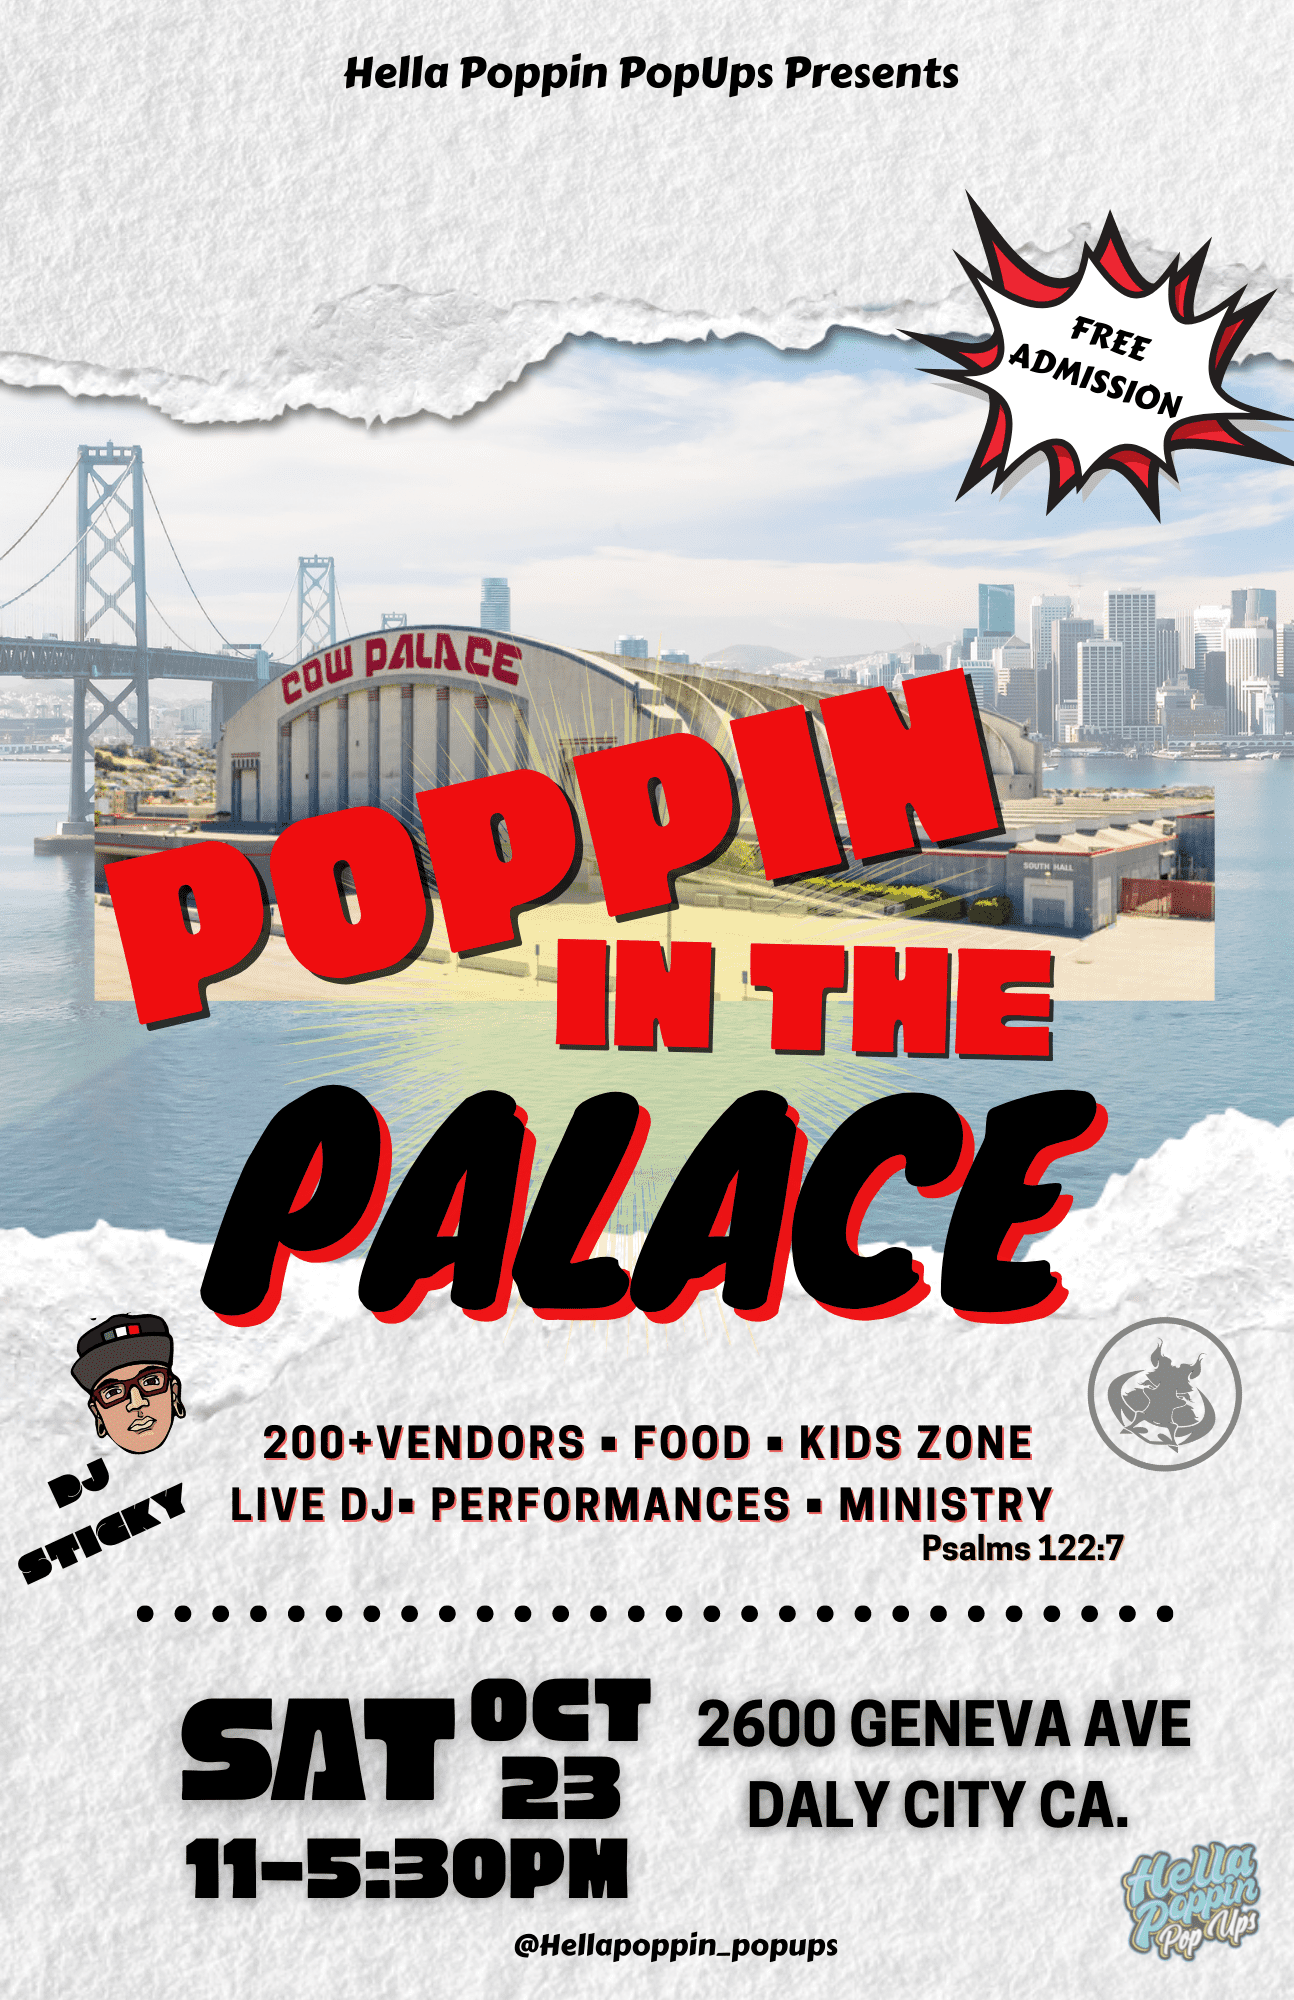 """""""Hella Poppin in the Palace"""" PopUp w/ DJs + 200+ Vendors (Cow Palace)"""